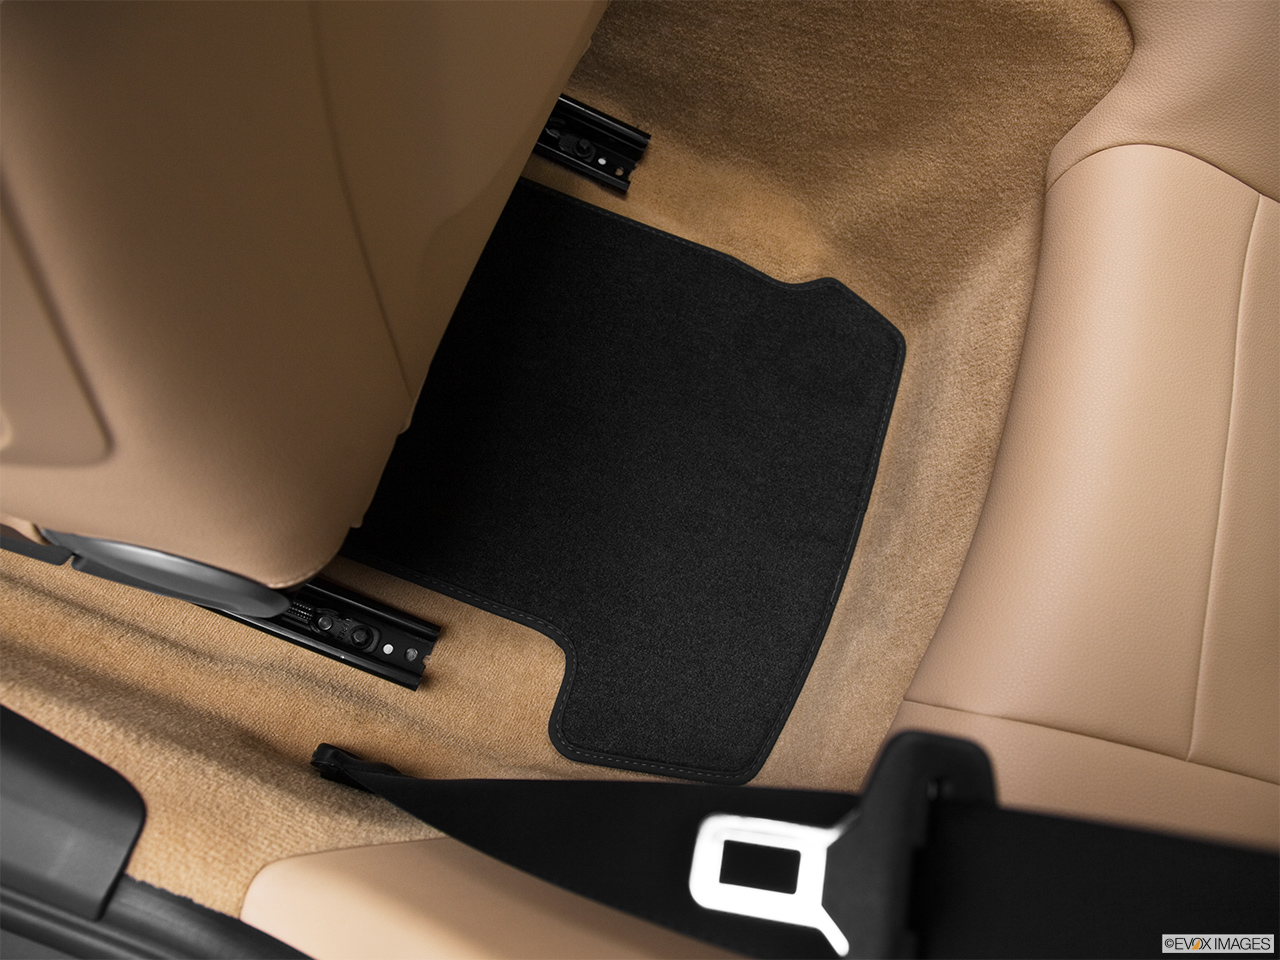 2012 Porsche 911 (991) Carrera S Rear driver's side floor mat. Mid-seat level from outside looking in.